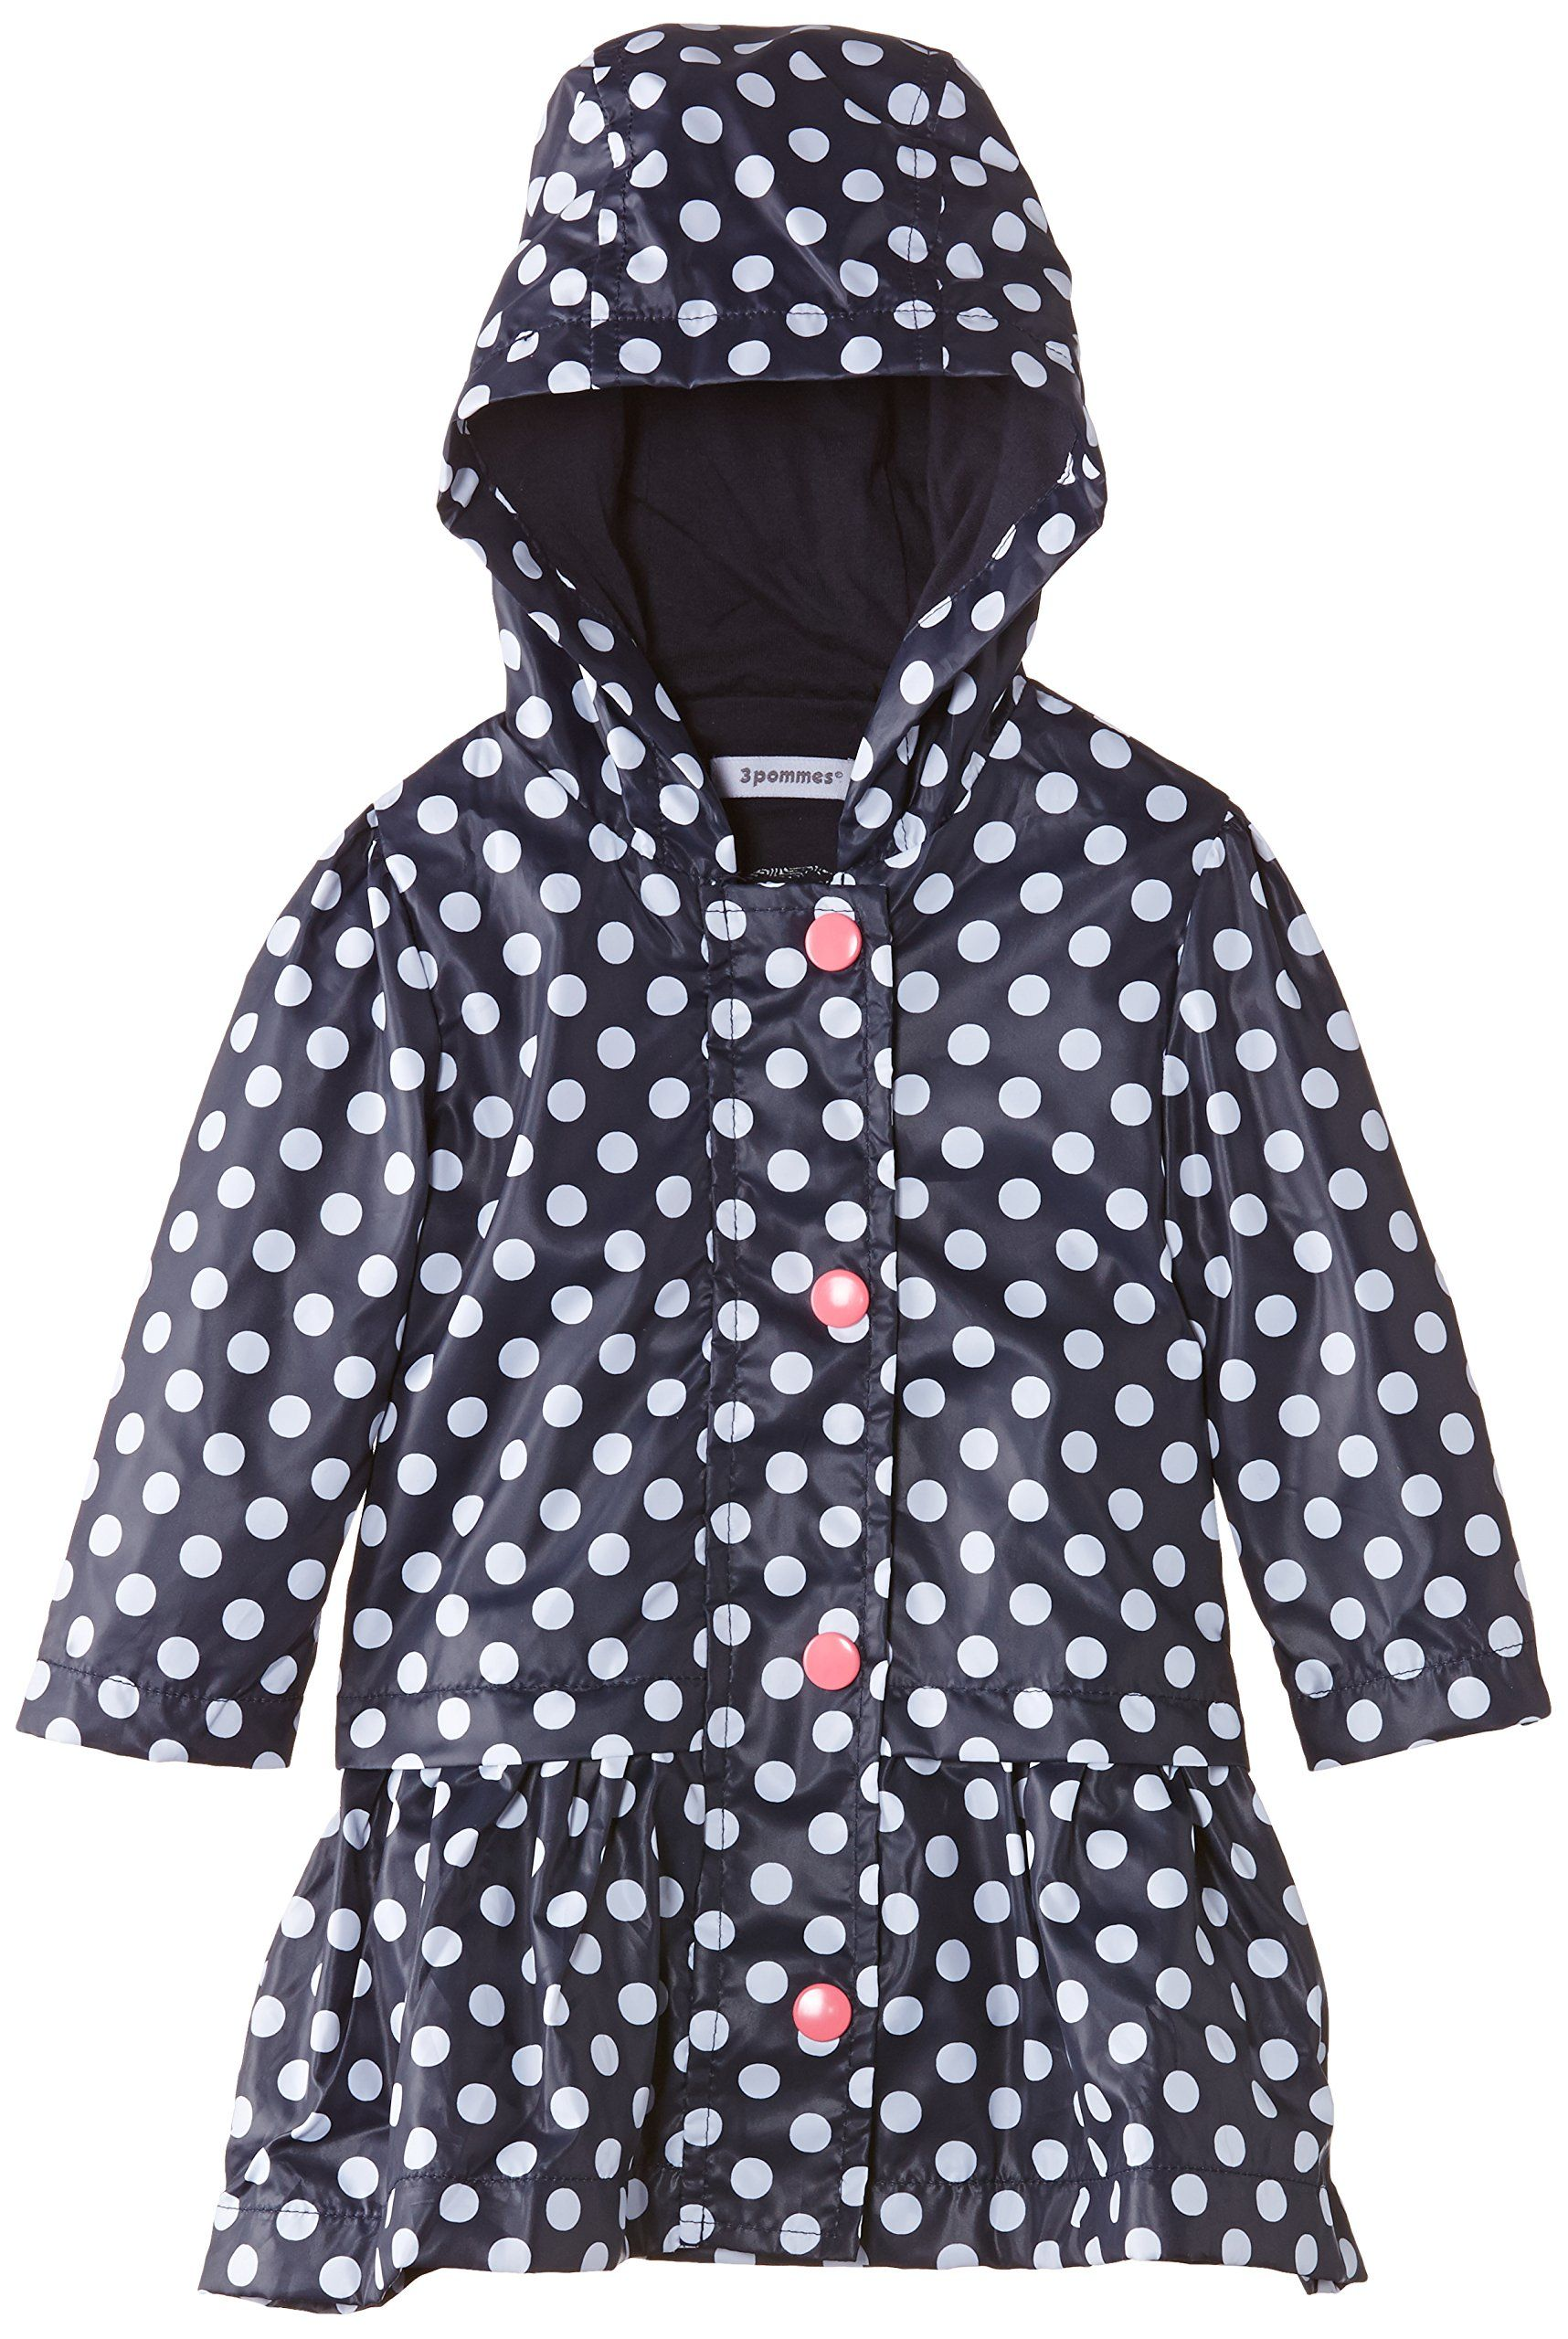 aea2bd0f 3Pommes Baby-Girls Parka Capuche Polka Dot Waterproof Jacket, Navy Blue,  18-24 months (Manufacturer Size:2 Years)